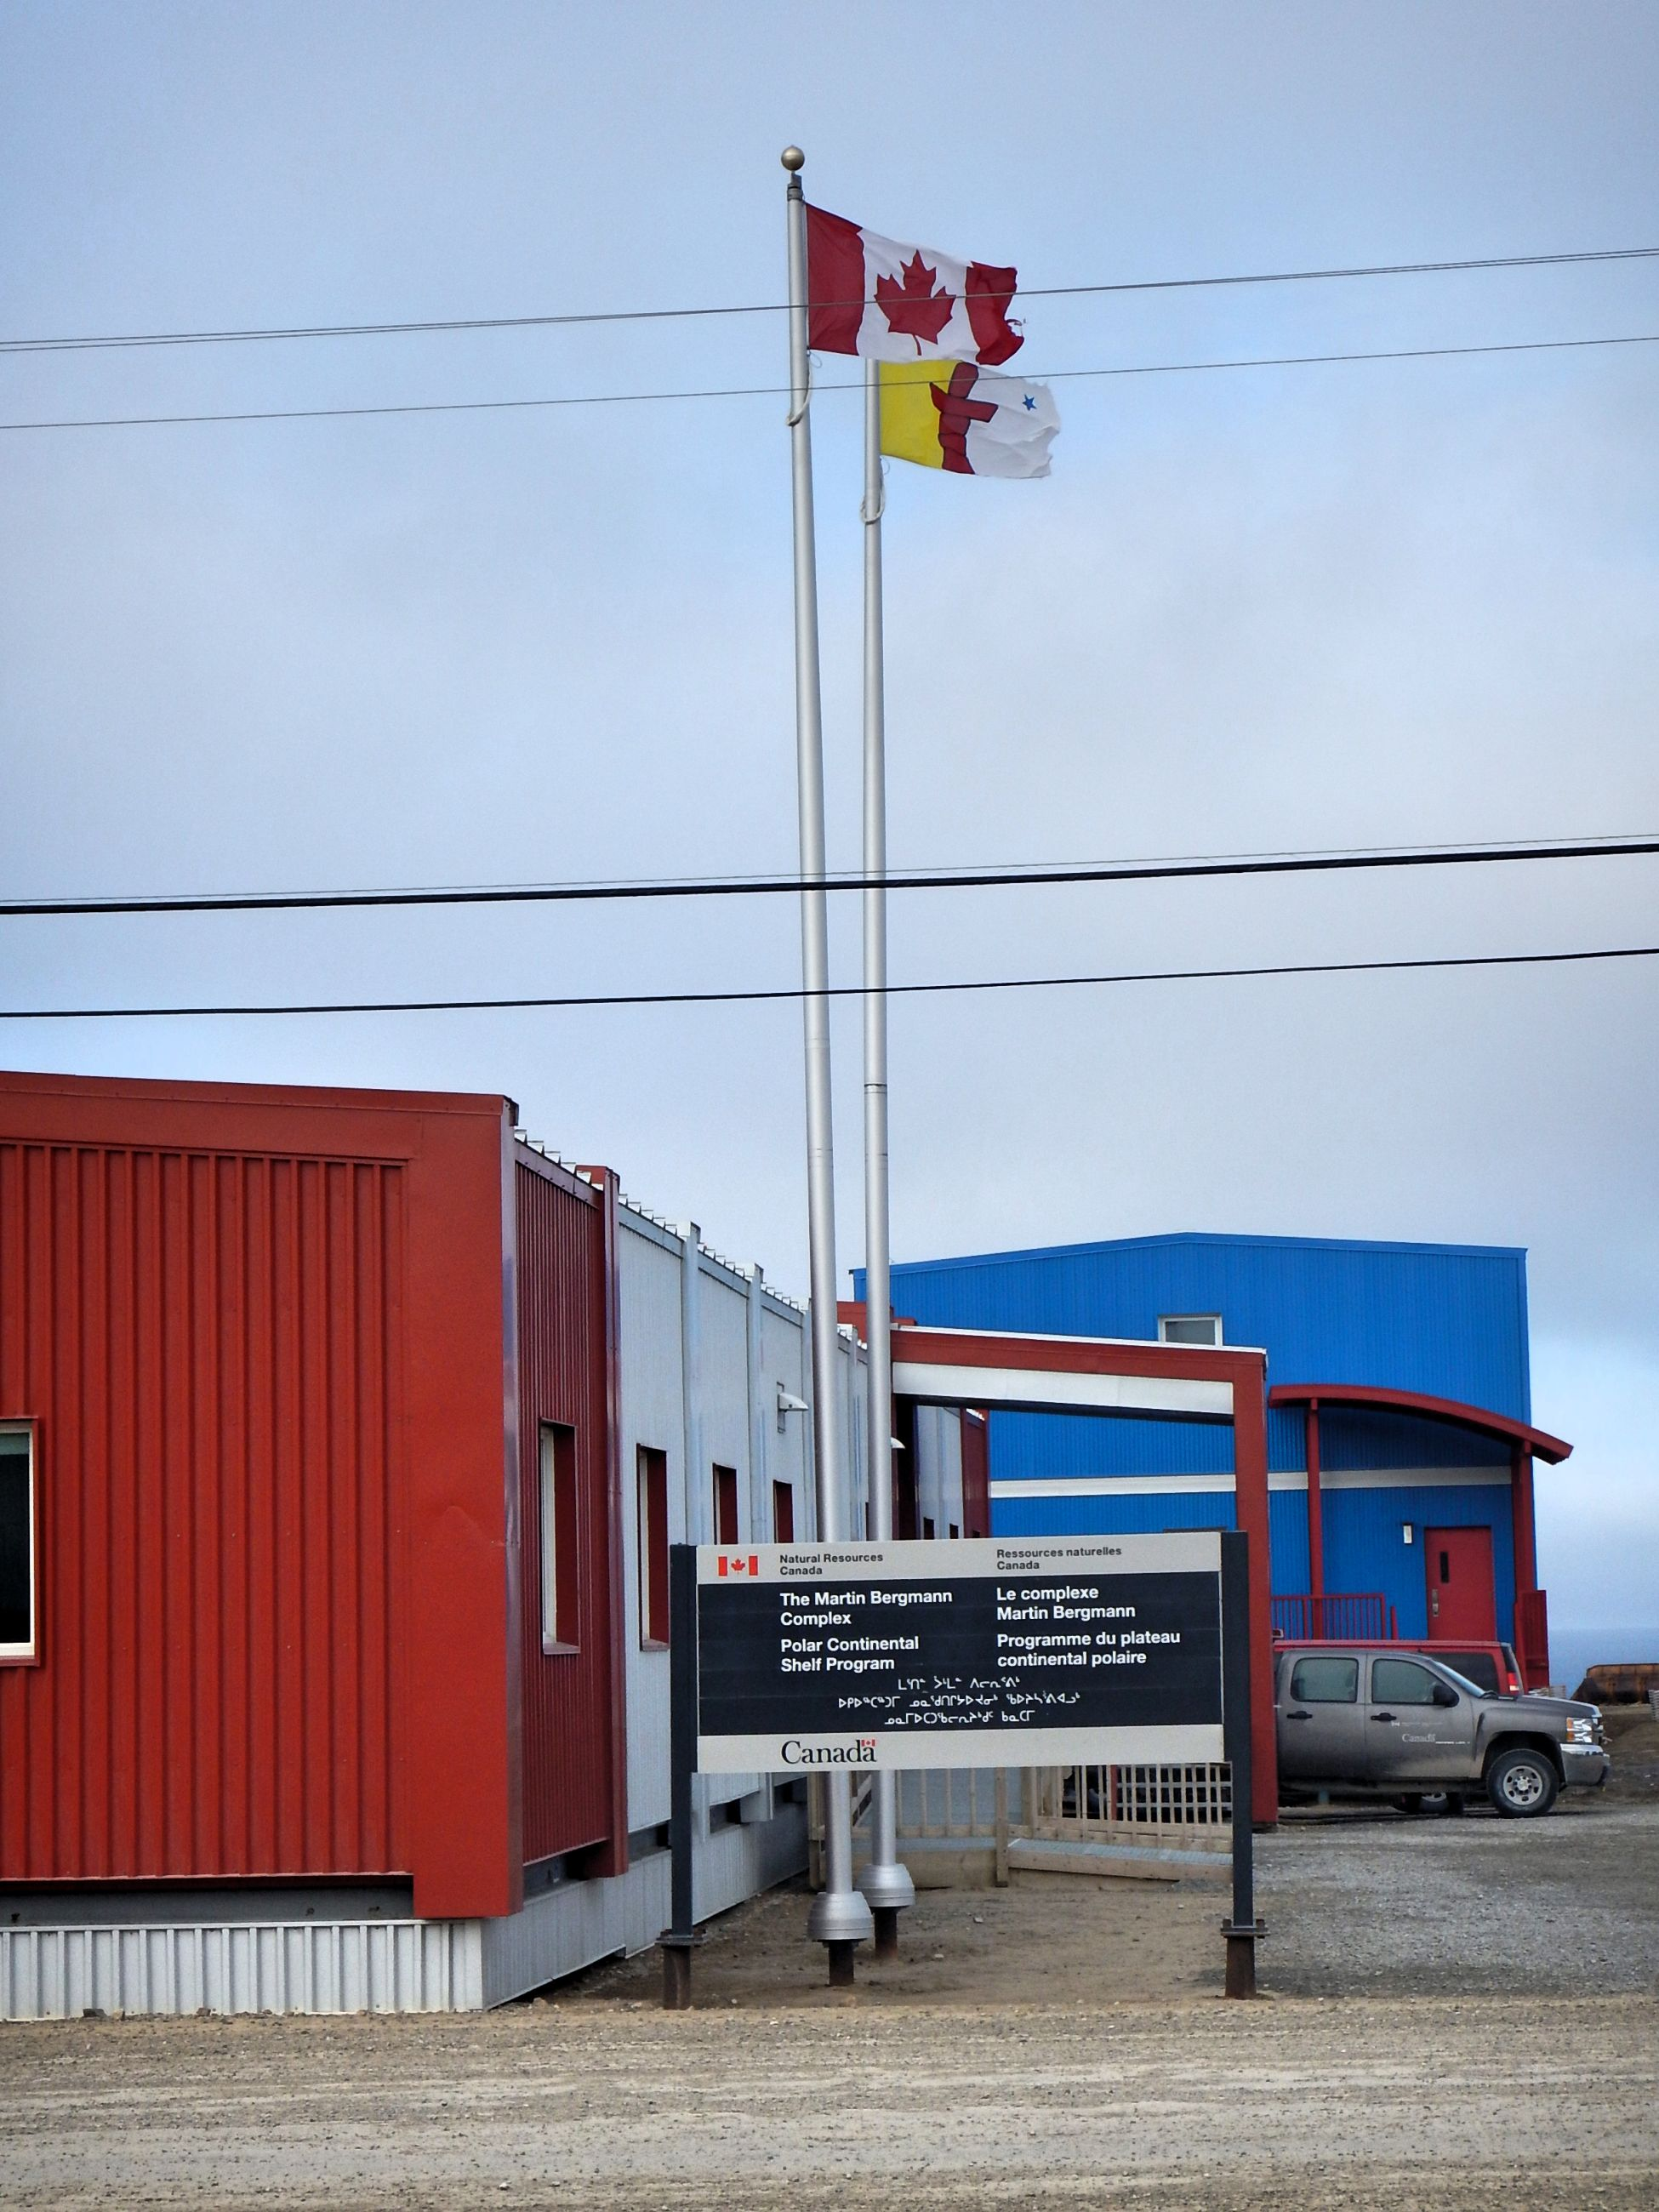 This image shows the Martin Bergmann Complex at the PCSP Arctic logistics hub in Resolute, Nunavut.